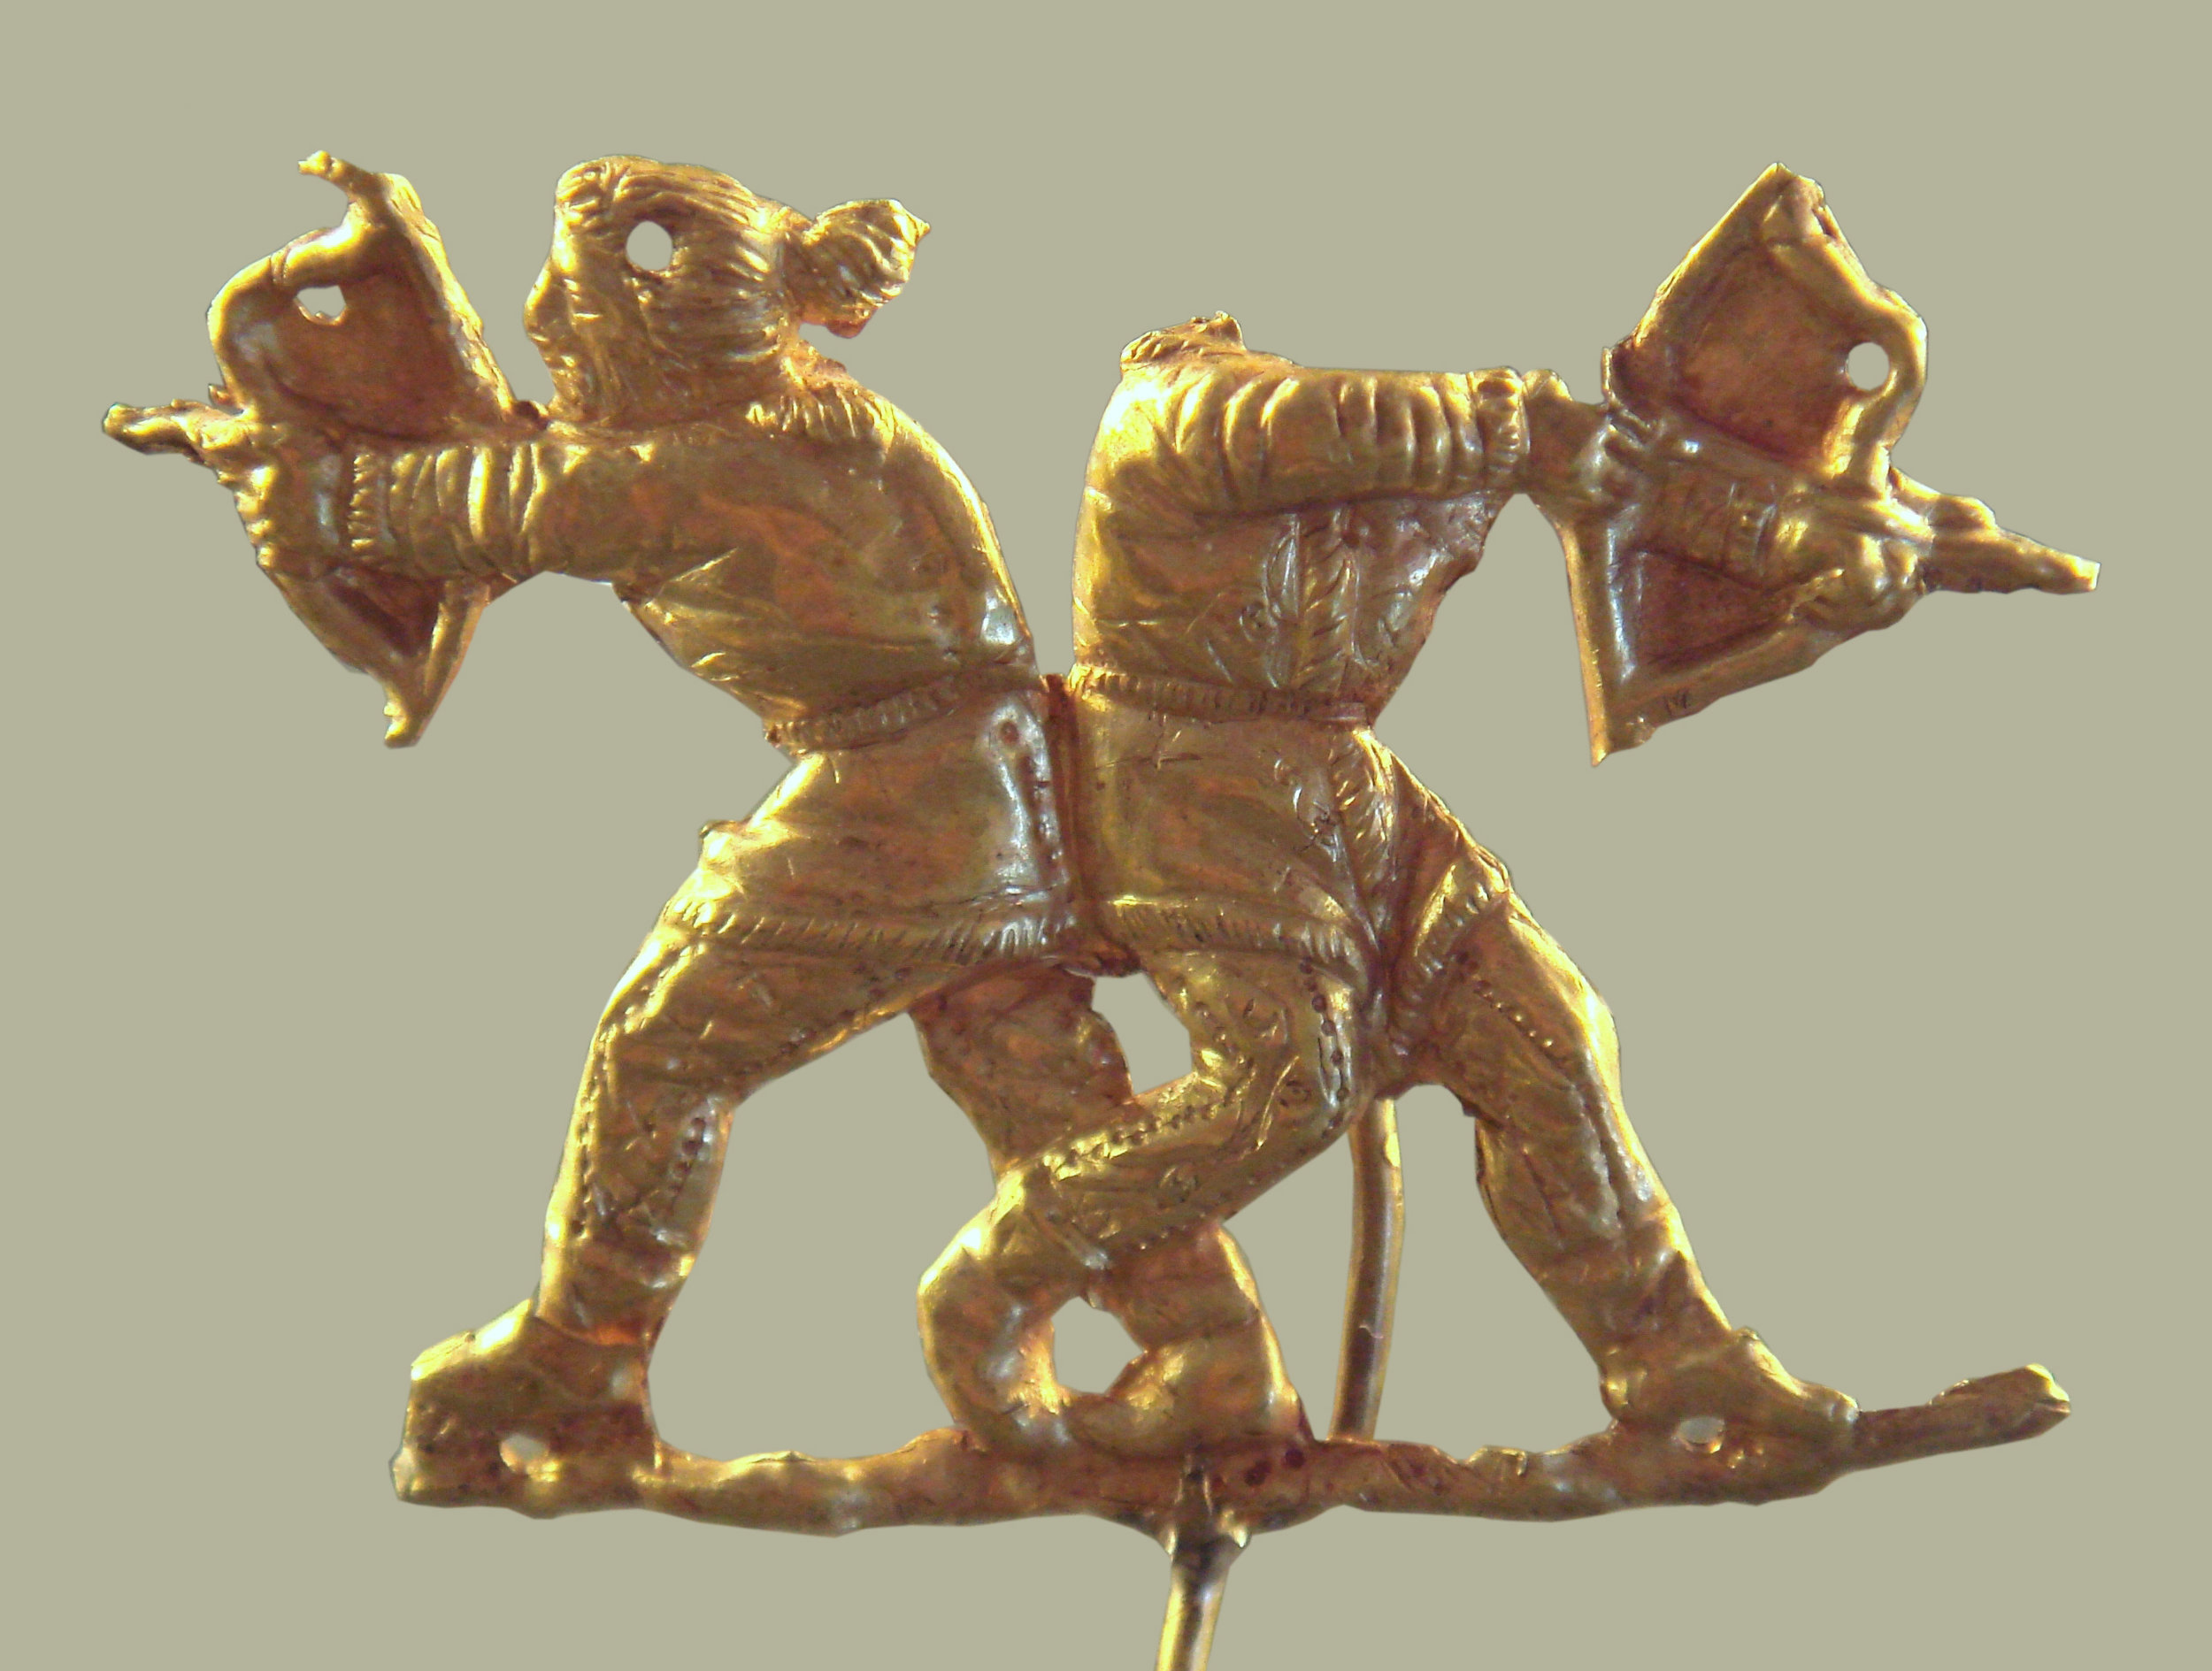 Scythians shooting with bows, as they do. - 4th century BCE. Wikicommons